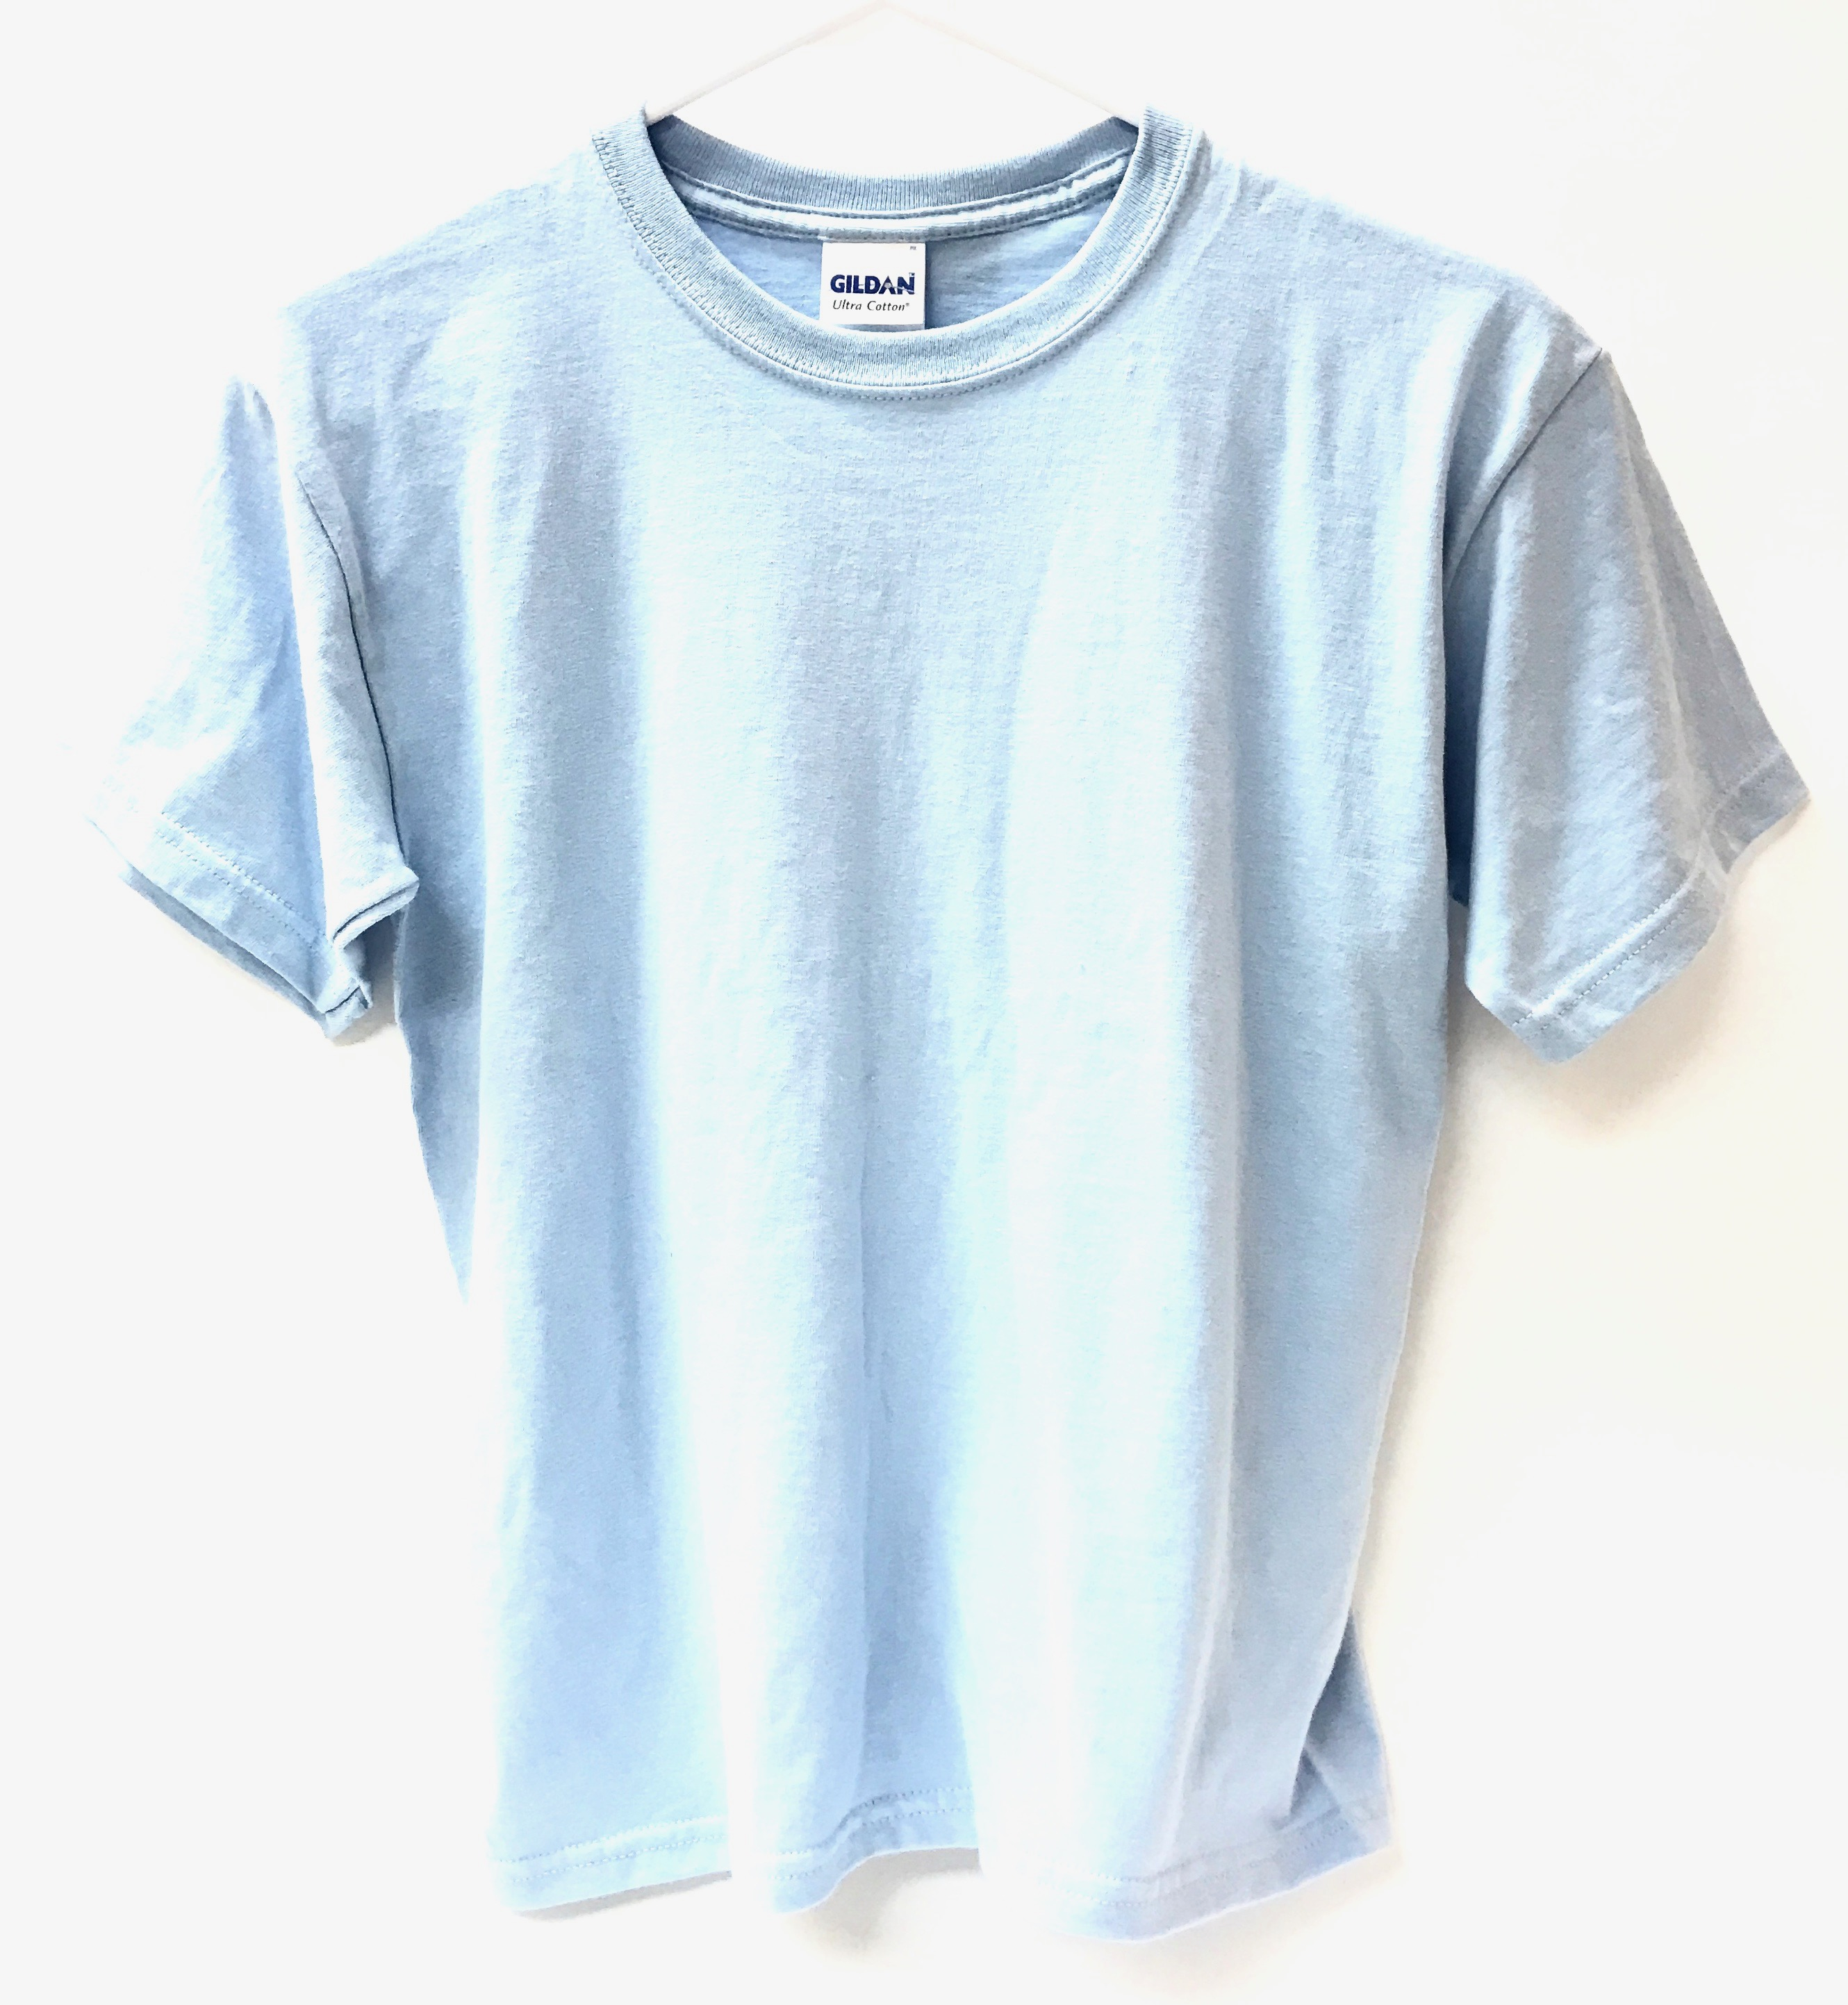 Youth Short Sleeve Tee - Light Blue